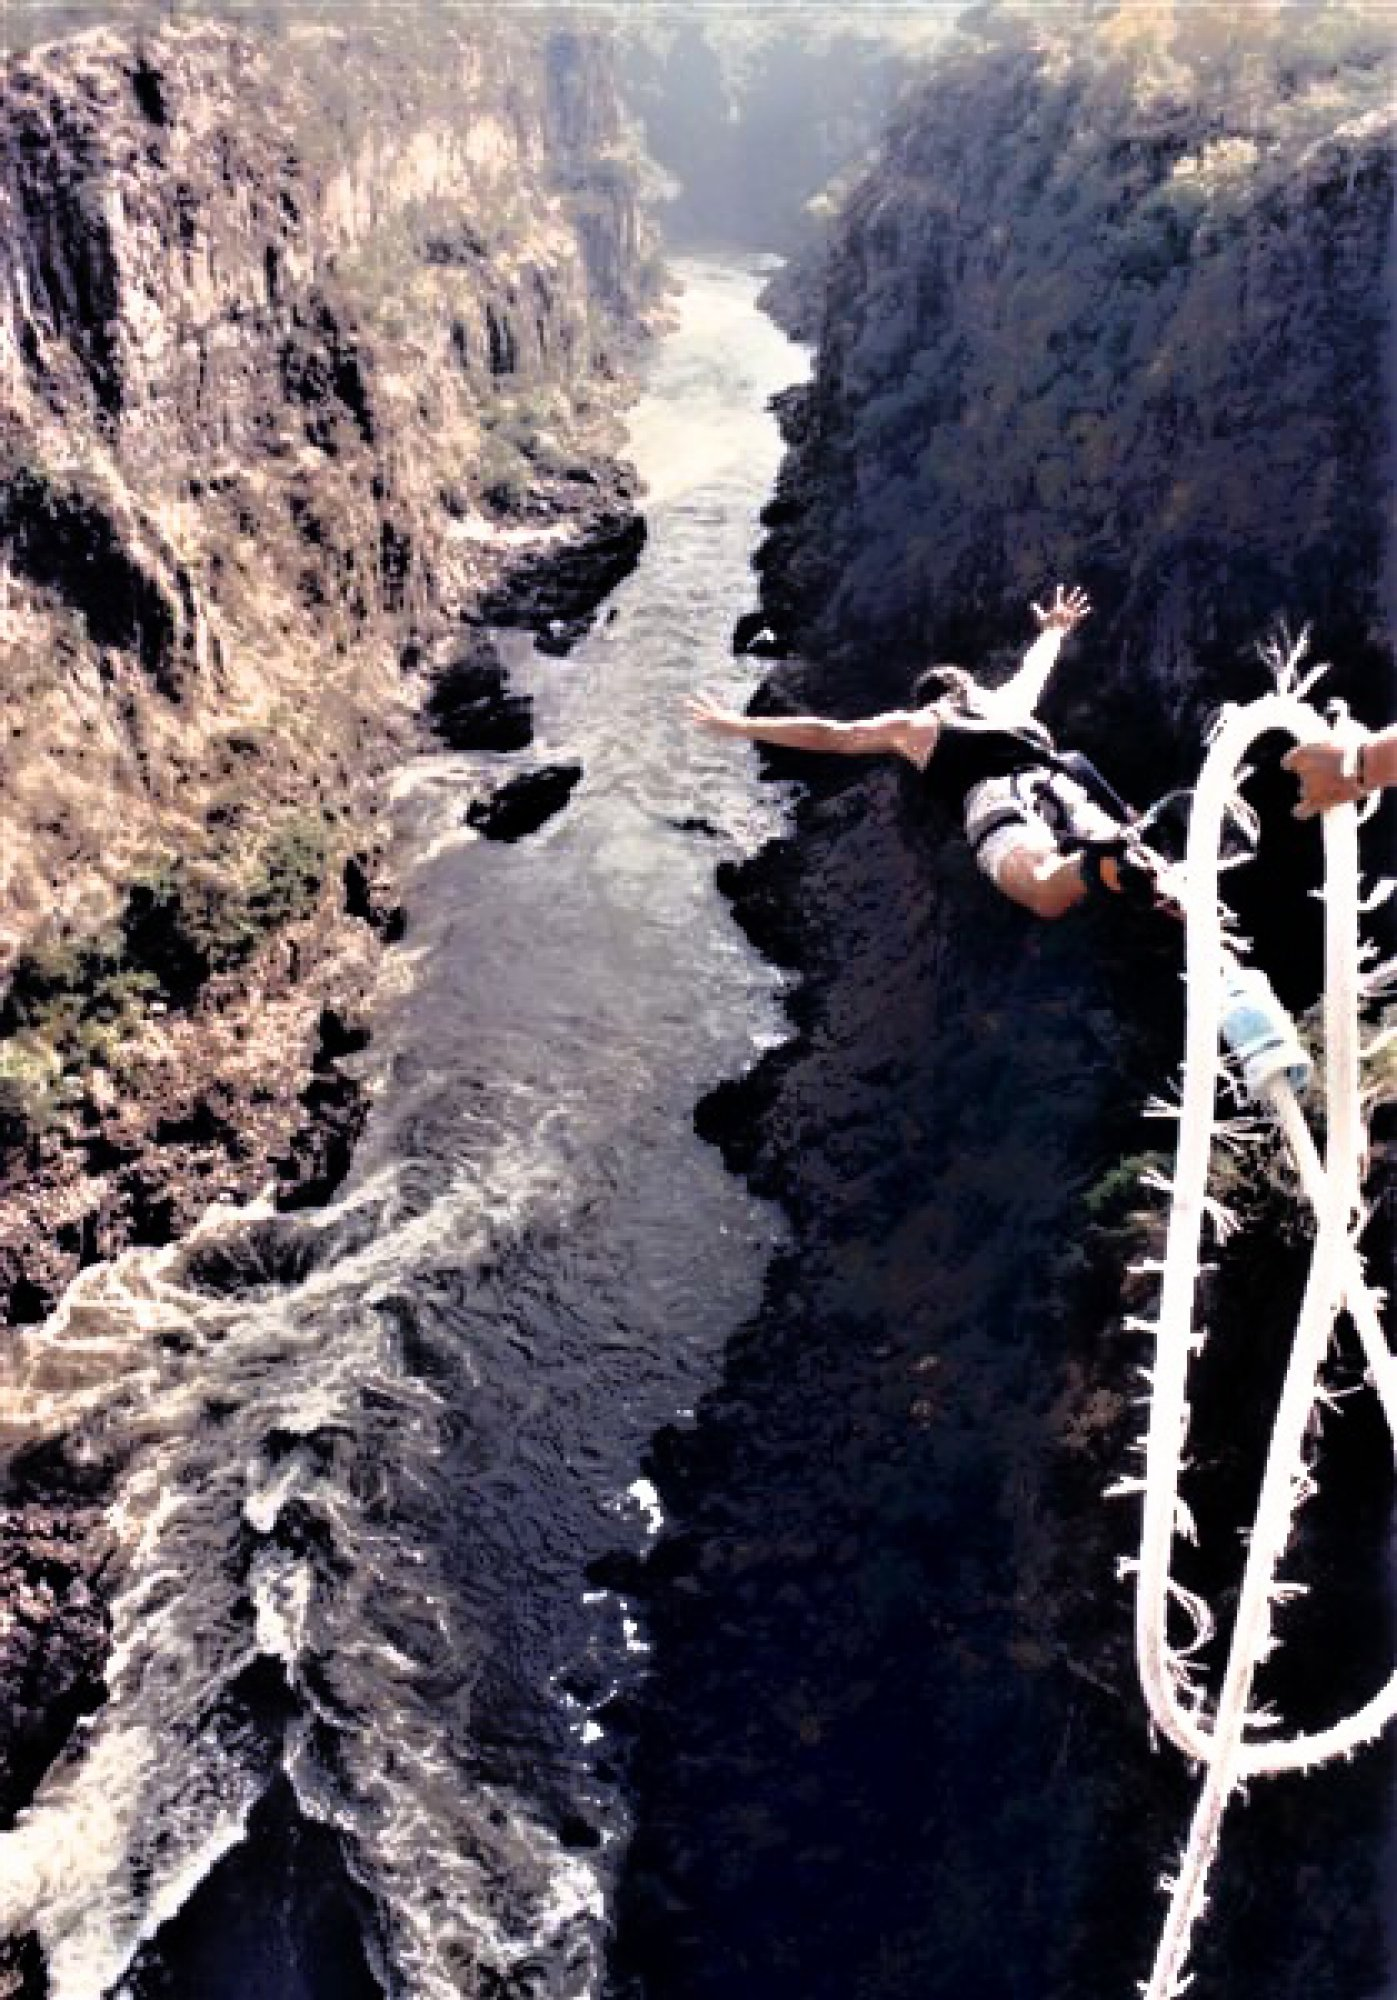 https://bubo.sk/uploads/galleries/16033/bill-s-bungy-jump.jpg